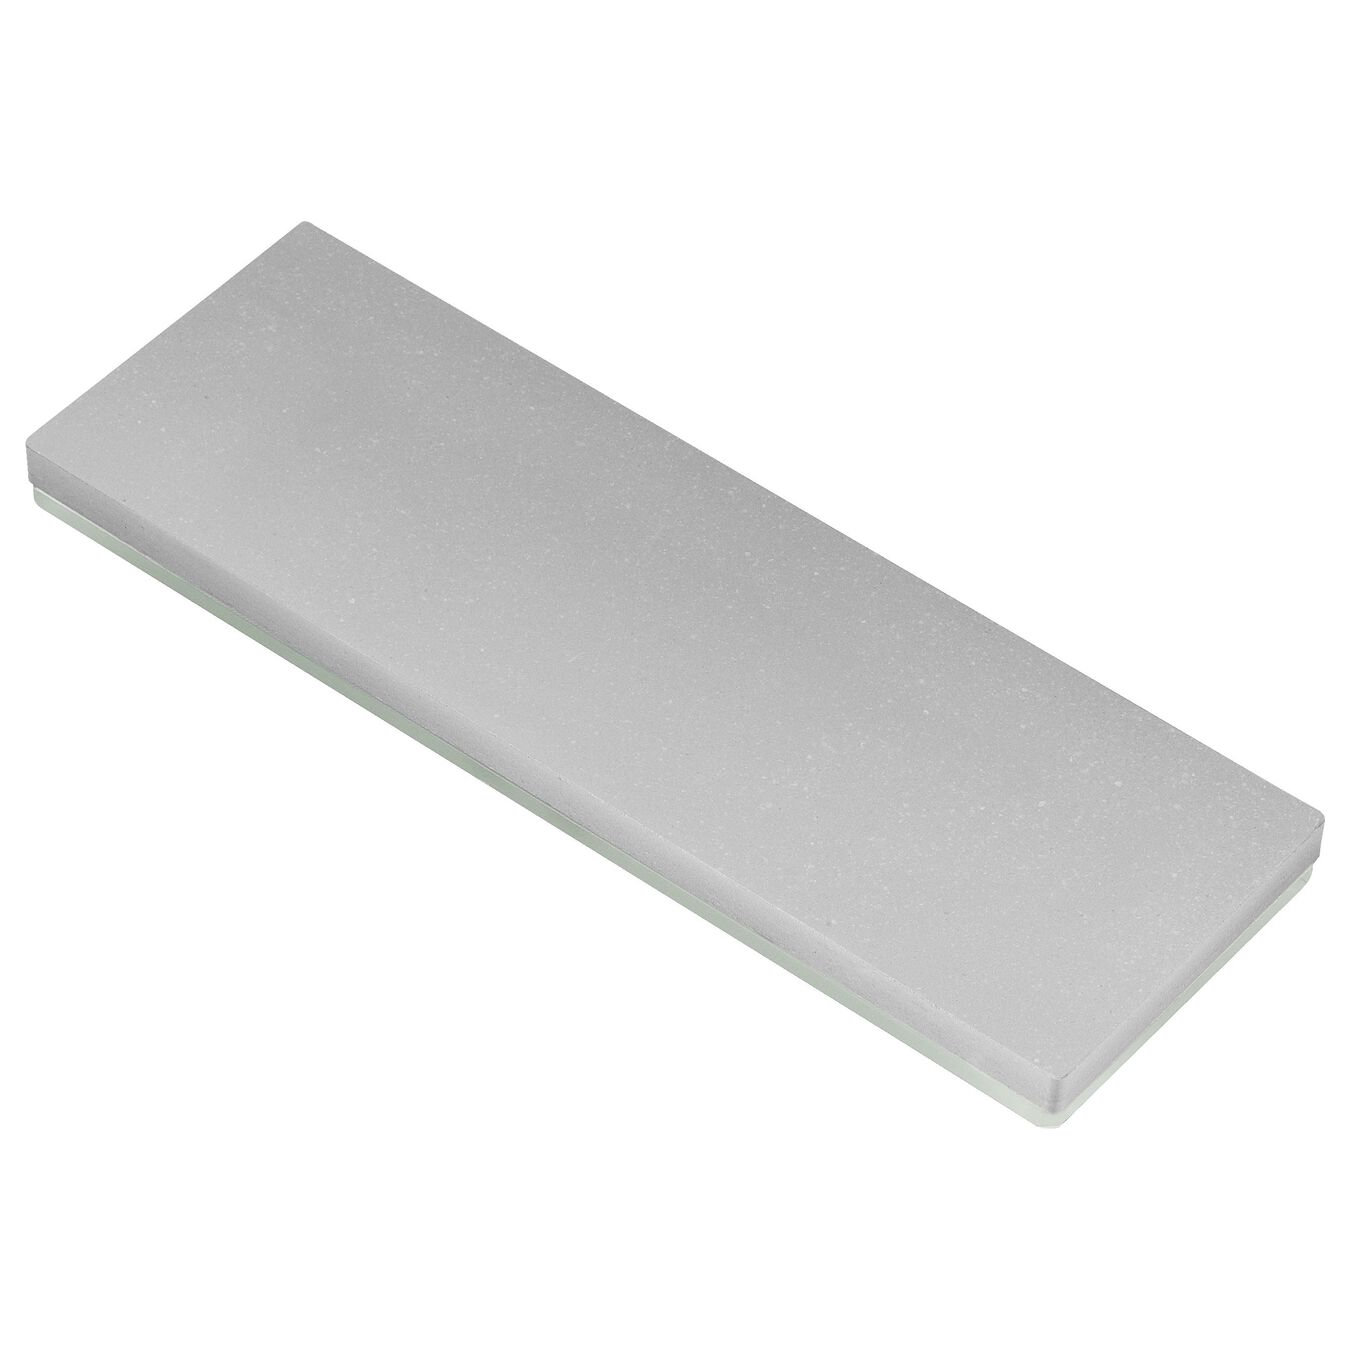 Sharpening stone,,large 1